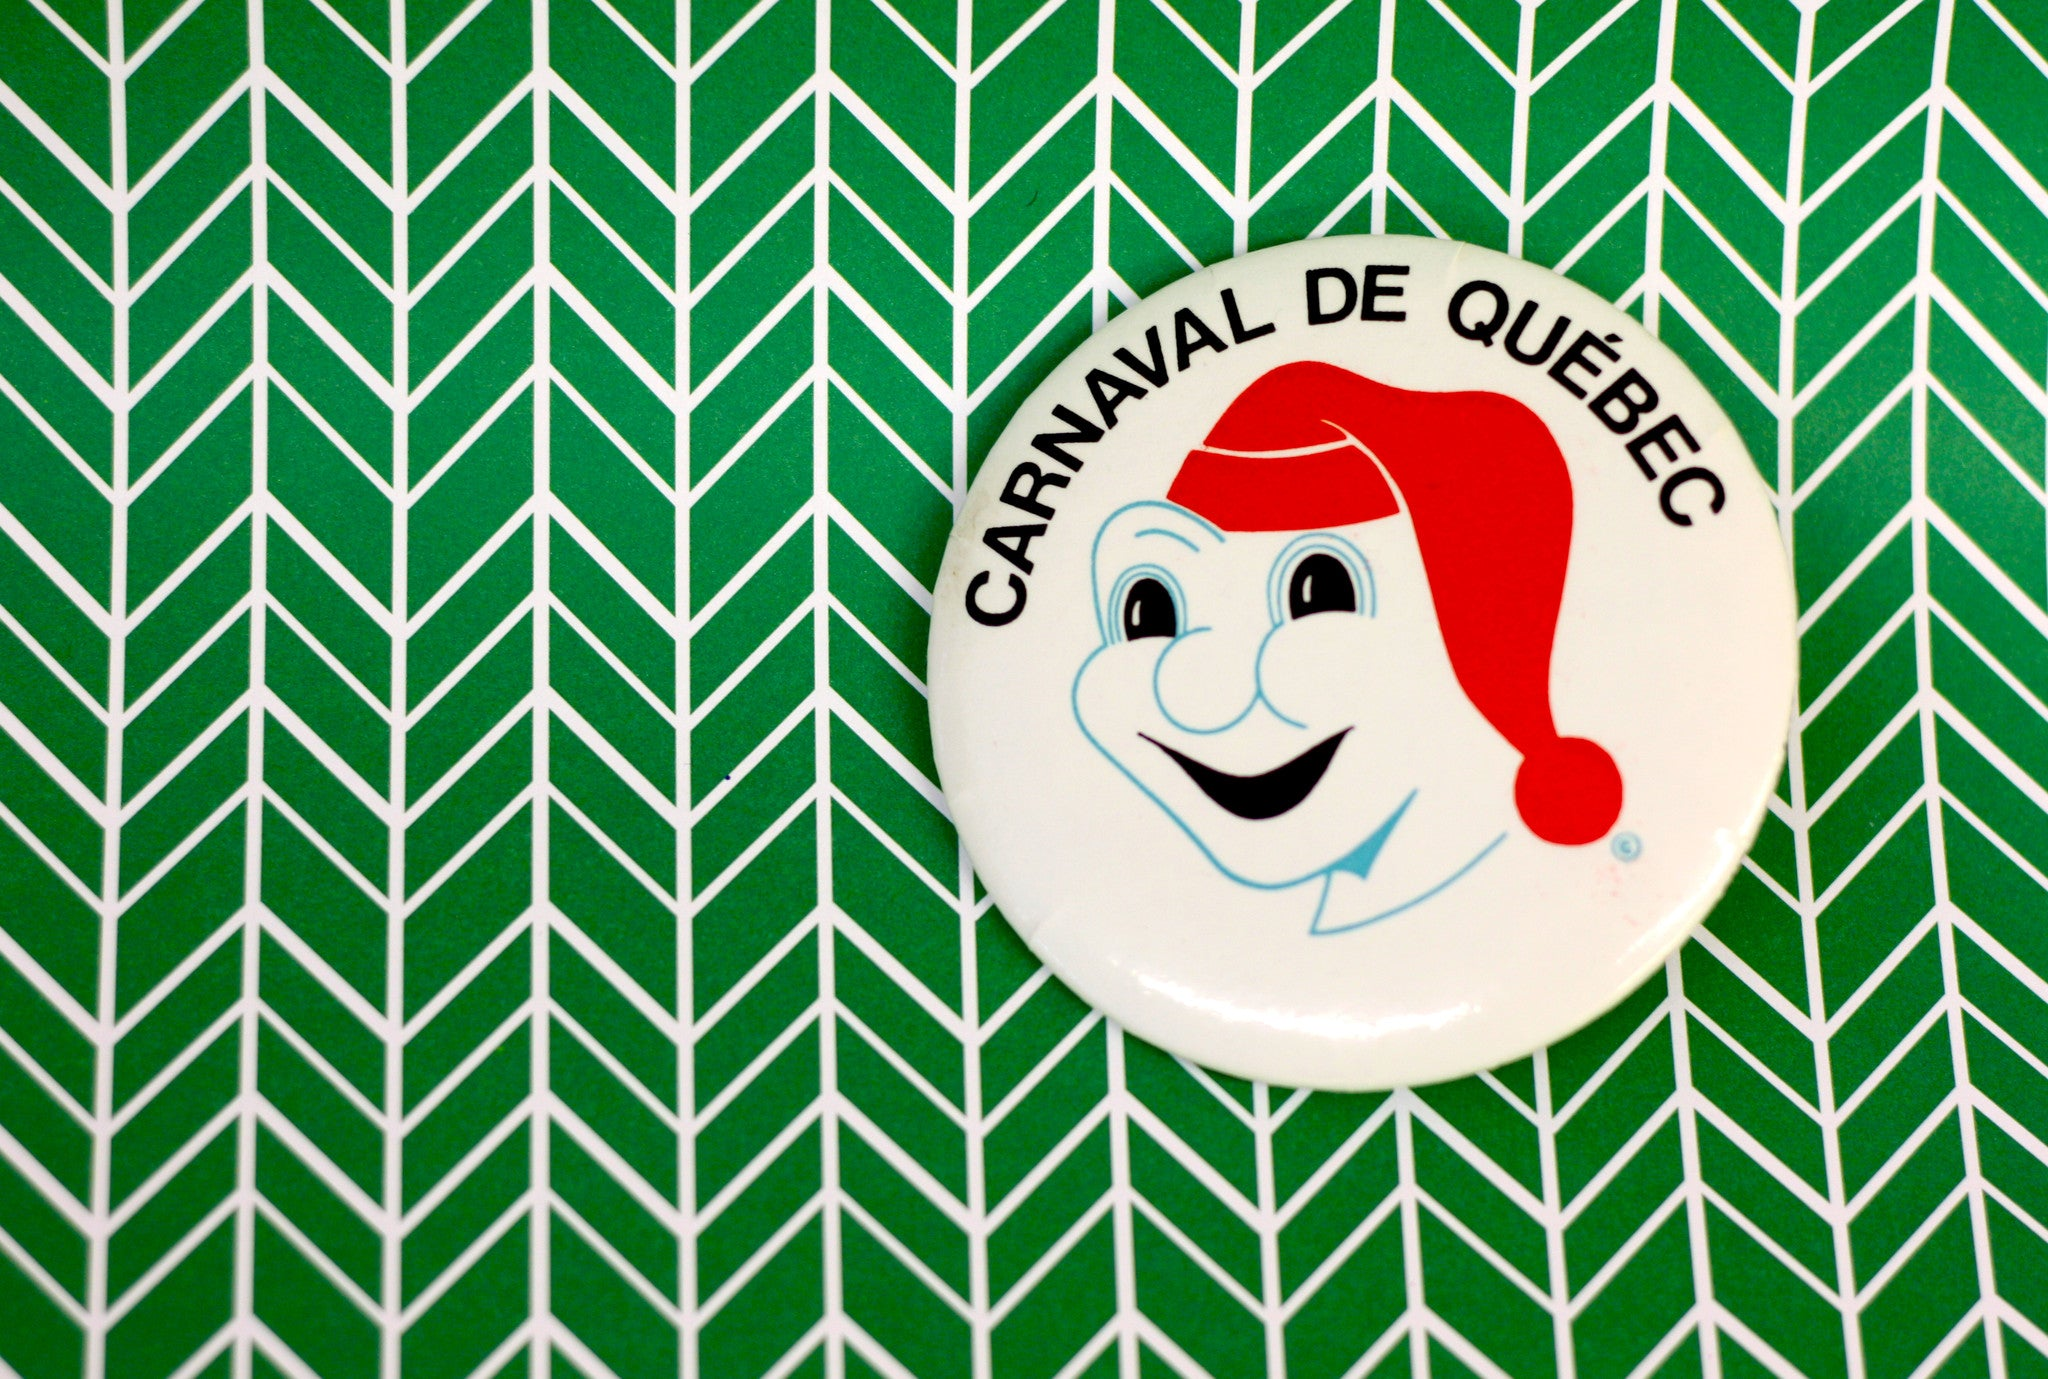 Vintage Button Archive, Canraval de Quebec Button, Bonhomme Carnaval